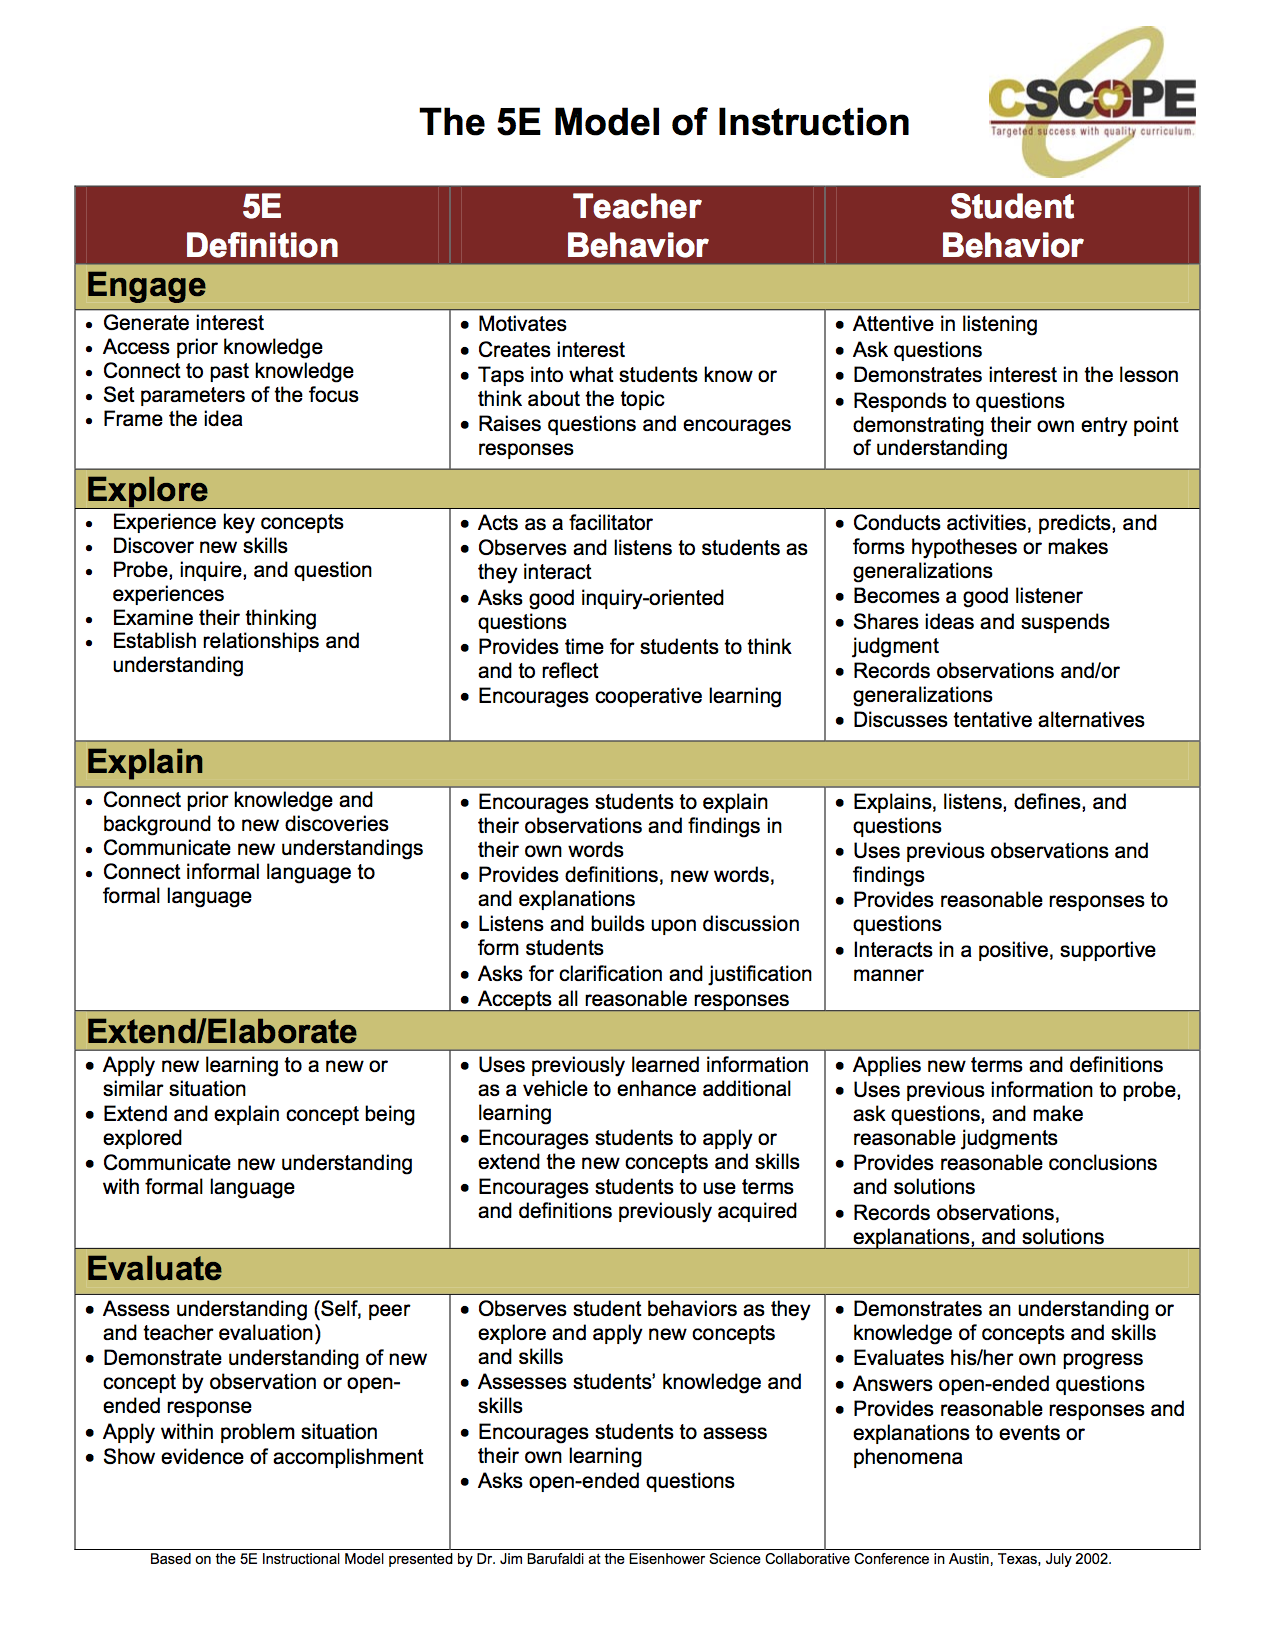 5E Model: different roles for the teacher and student compared to a ...